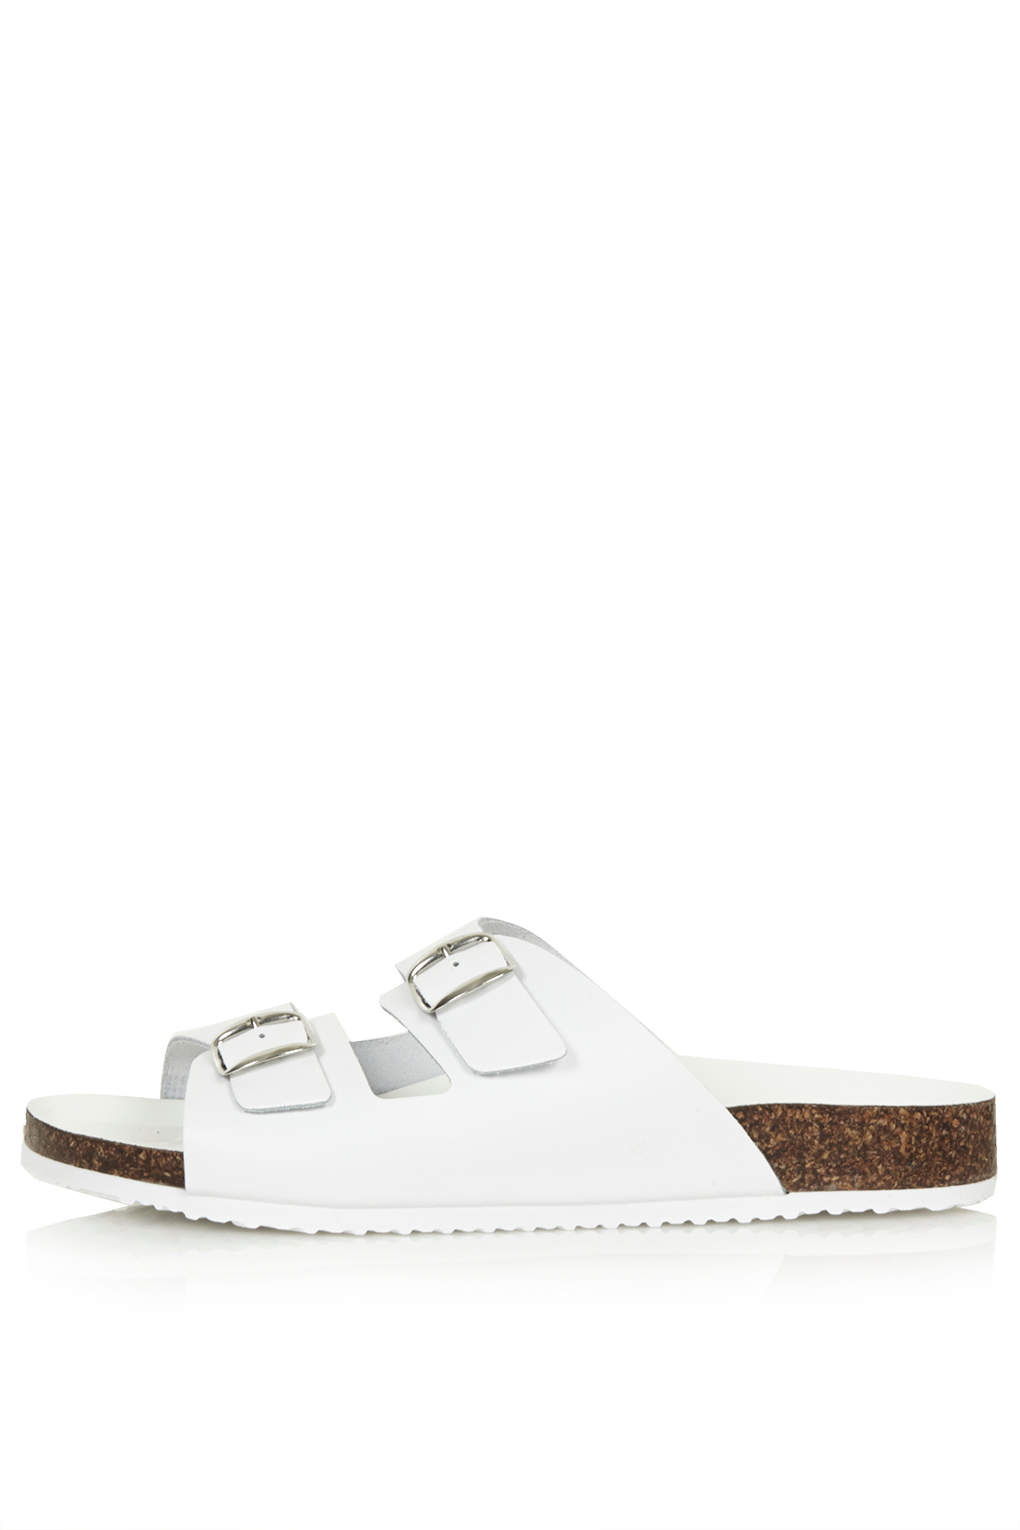 Heights double strap sandals